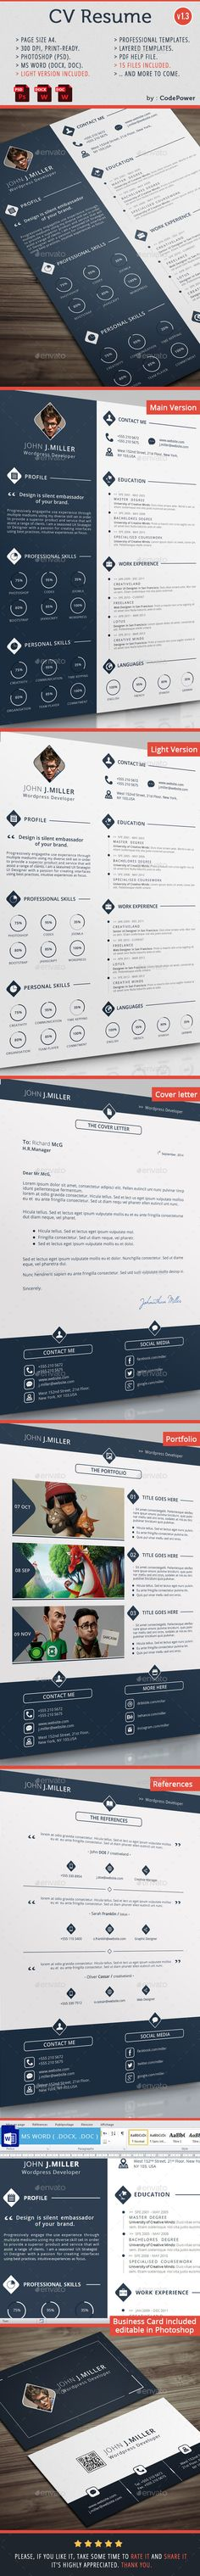 CV Resume — Photoshop PSD #simple resume #cv design • Available here → https://graphicriver.net/item/cv-resume/8886019?ref=pxcr